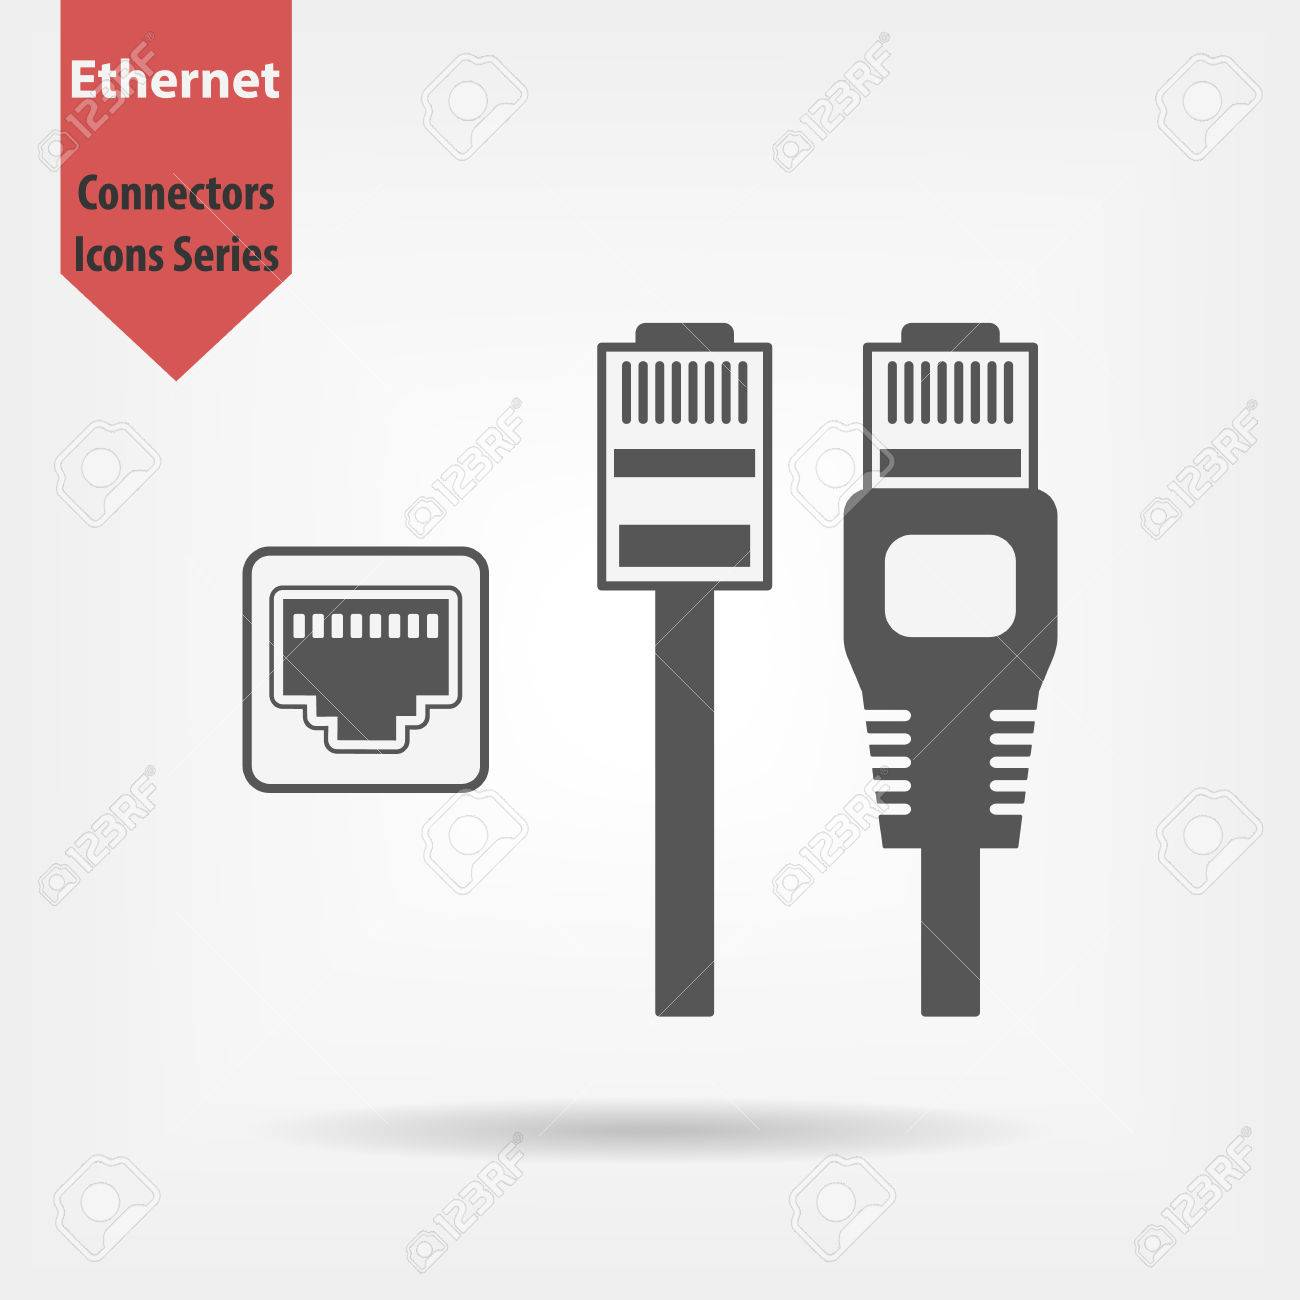 Ethernet Connectors And Socket With Cable Symbol For Download